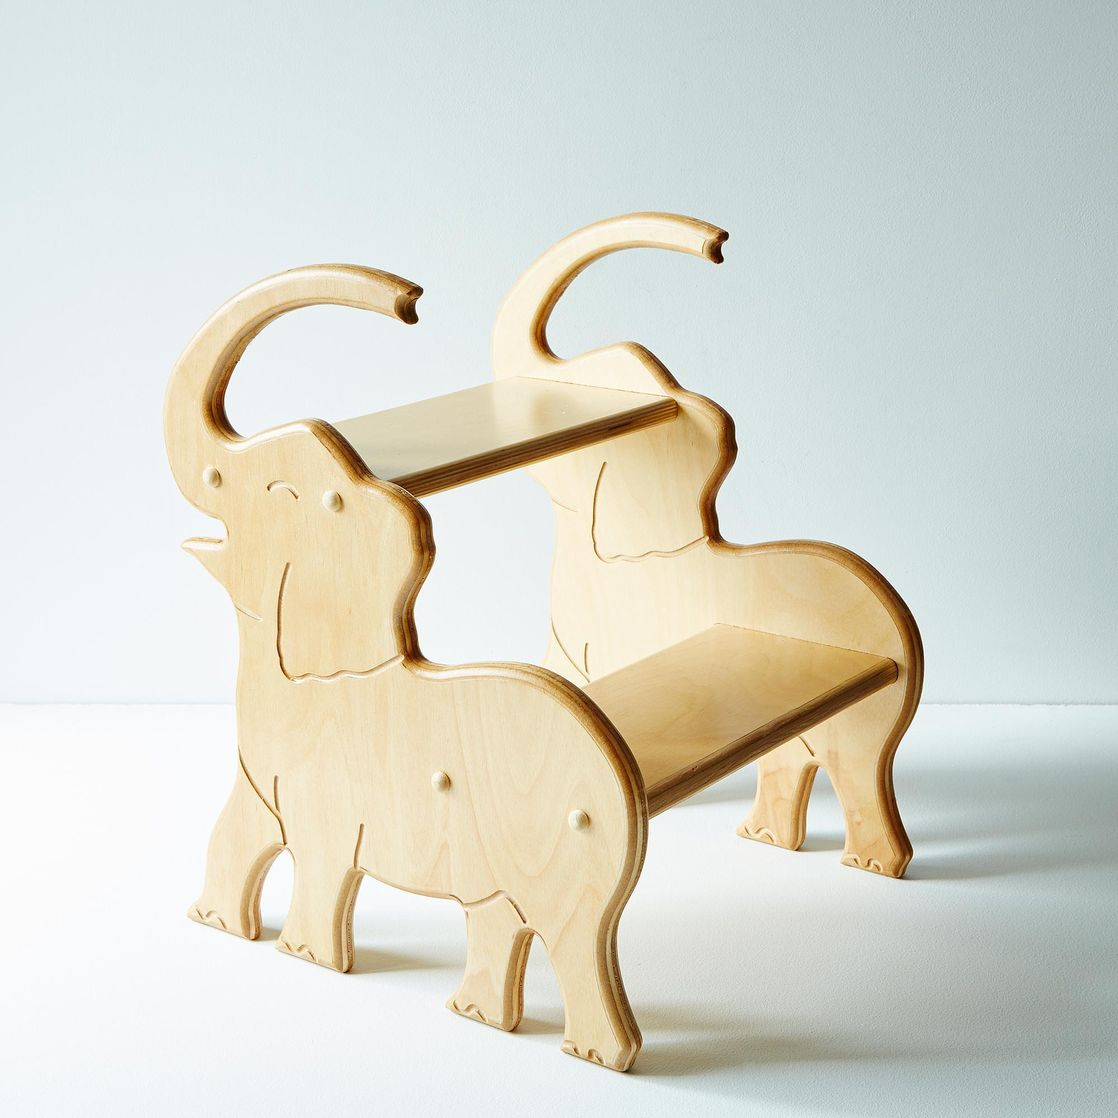 handcrafted elephant stool on food - handcrafted elephant stool